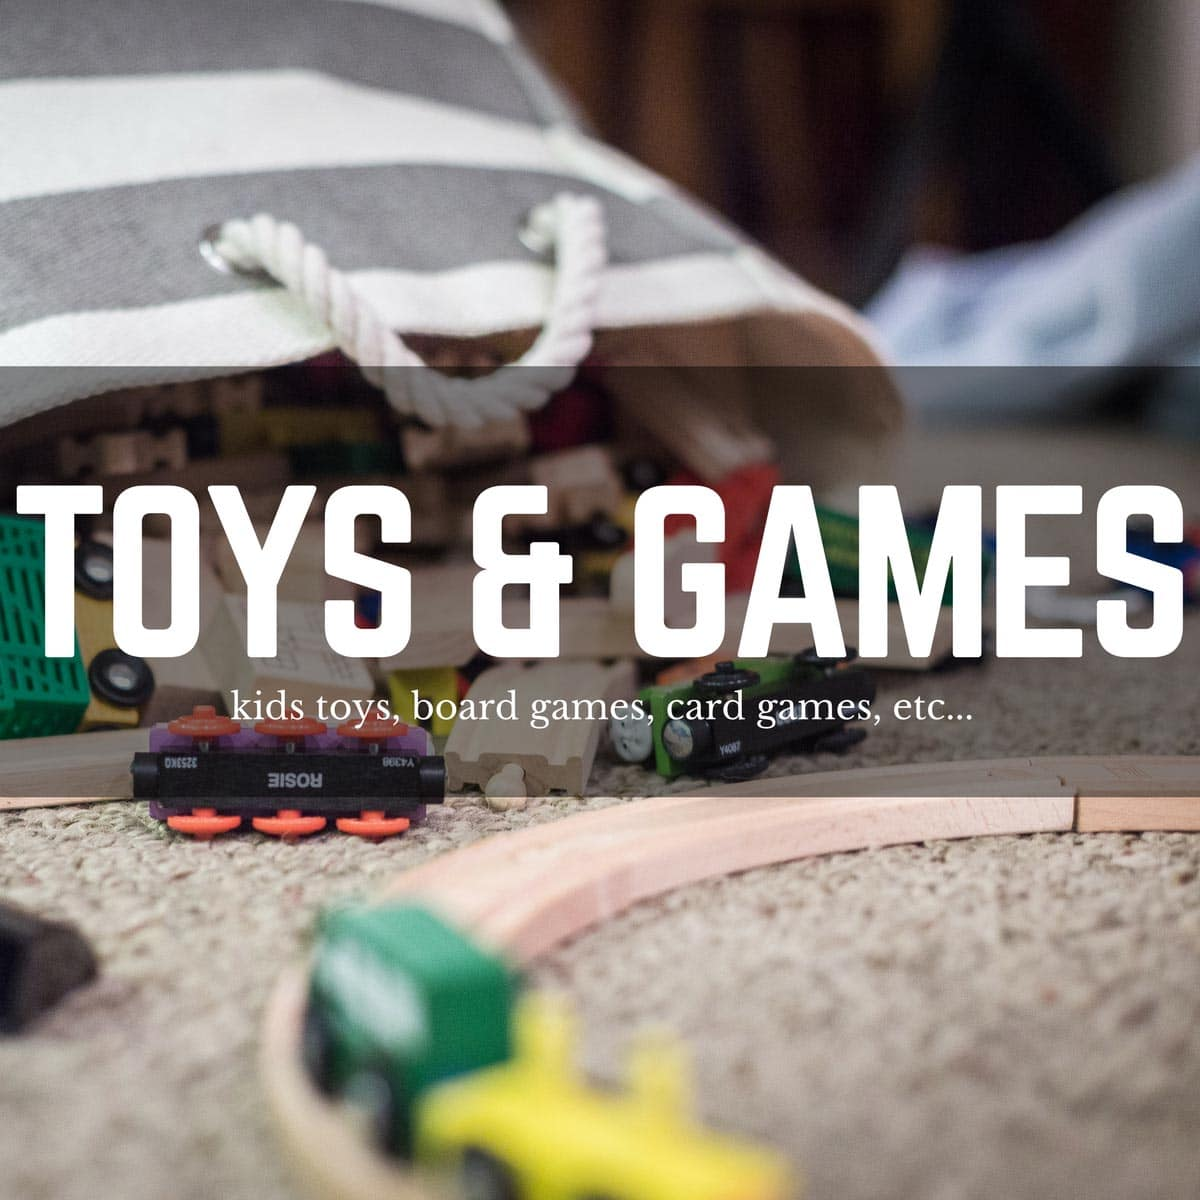 made in usa toys, american made toys, made in usa games, american made games, made in usa card games, american made card games, made in usa blocks, american made blocks, made in usa toy, american made toy, made in usa products list, made in america products list, american made products list